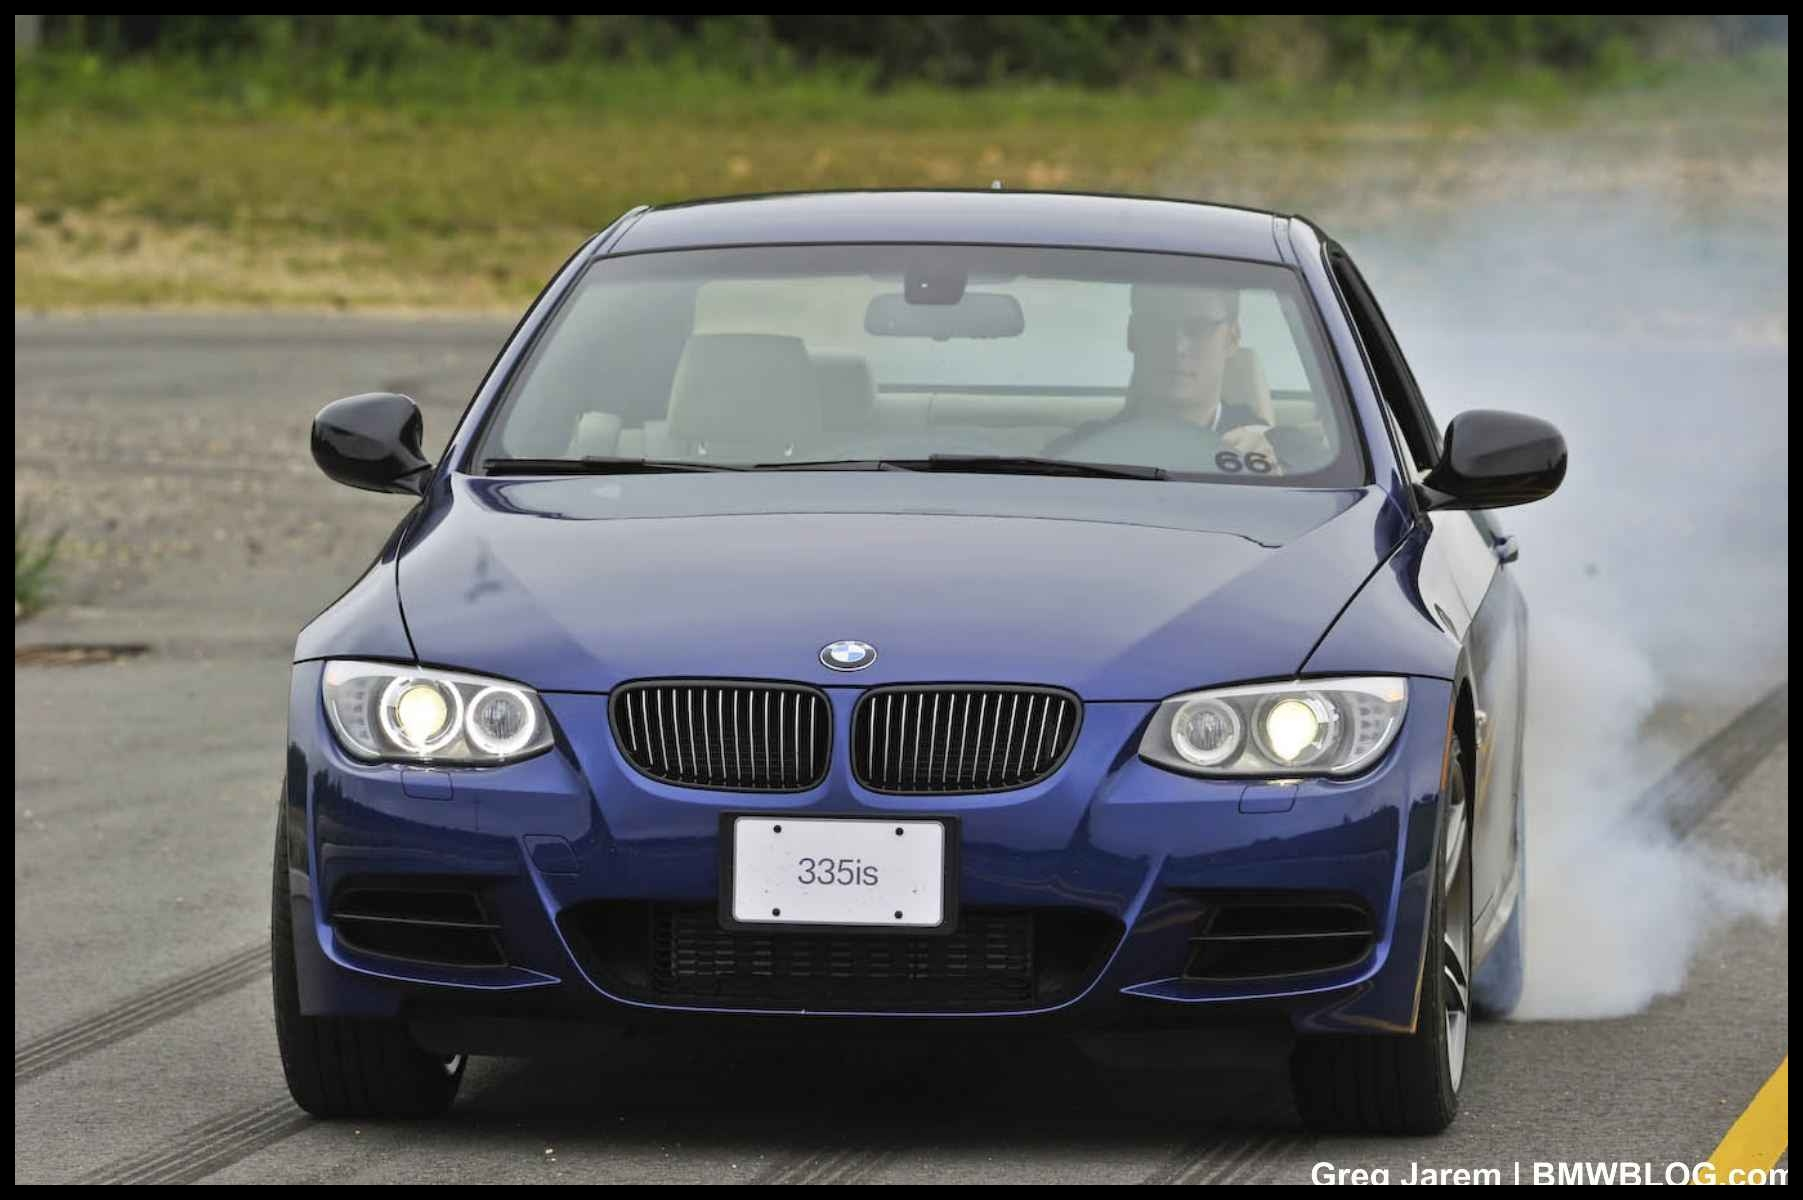 bmw 335is race track review 51 655x435